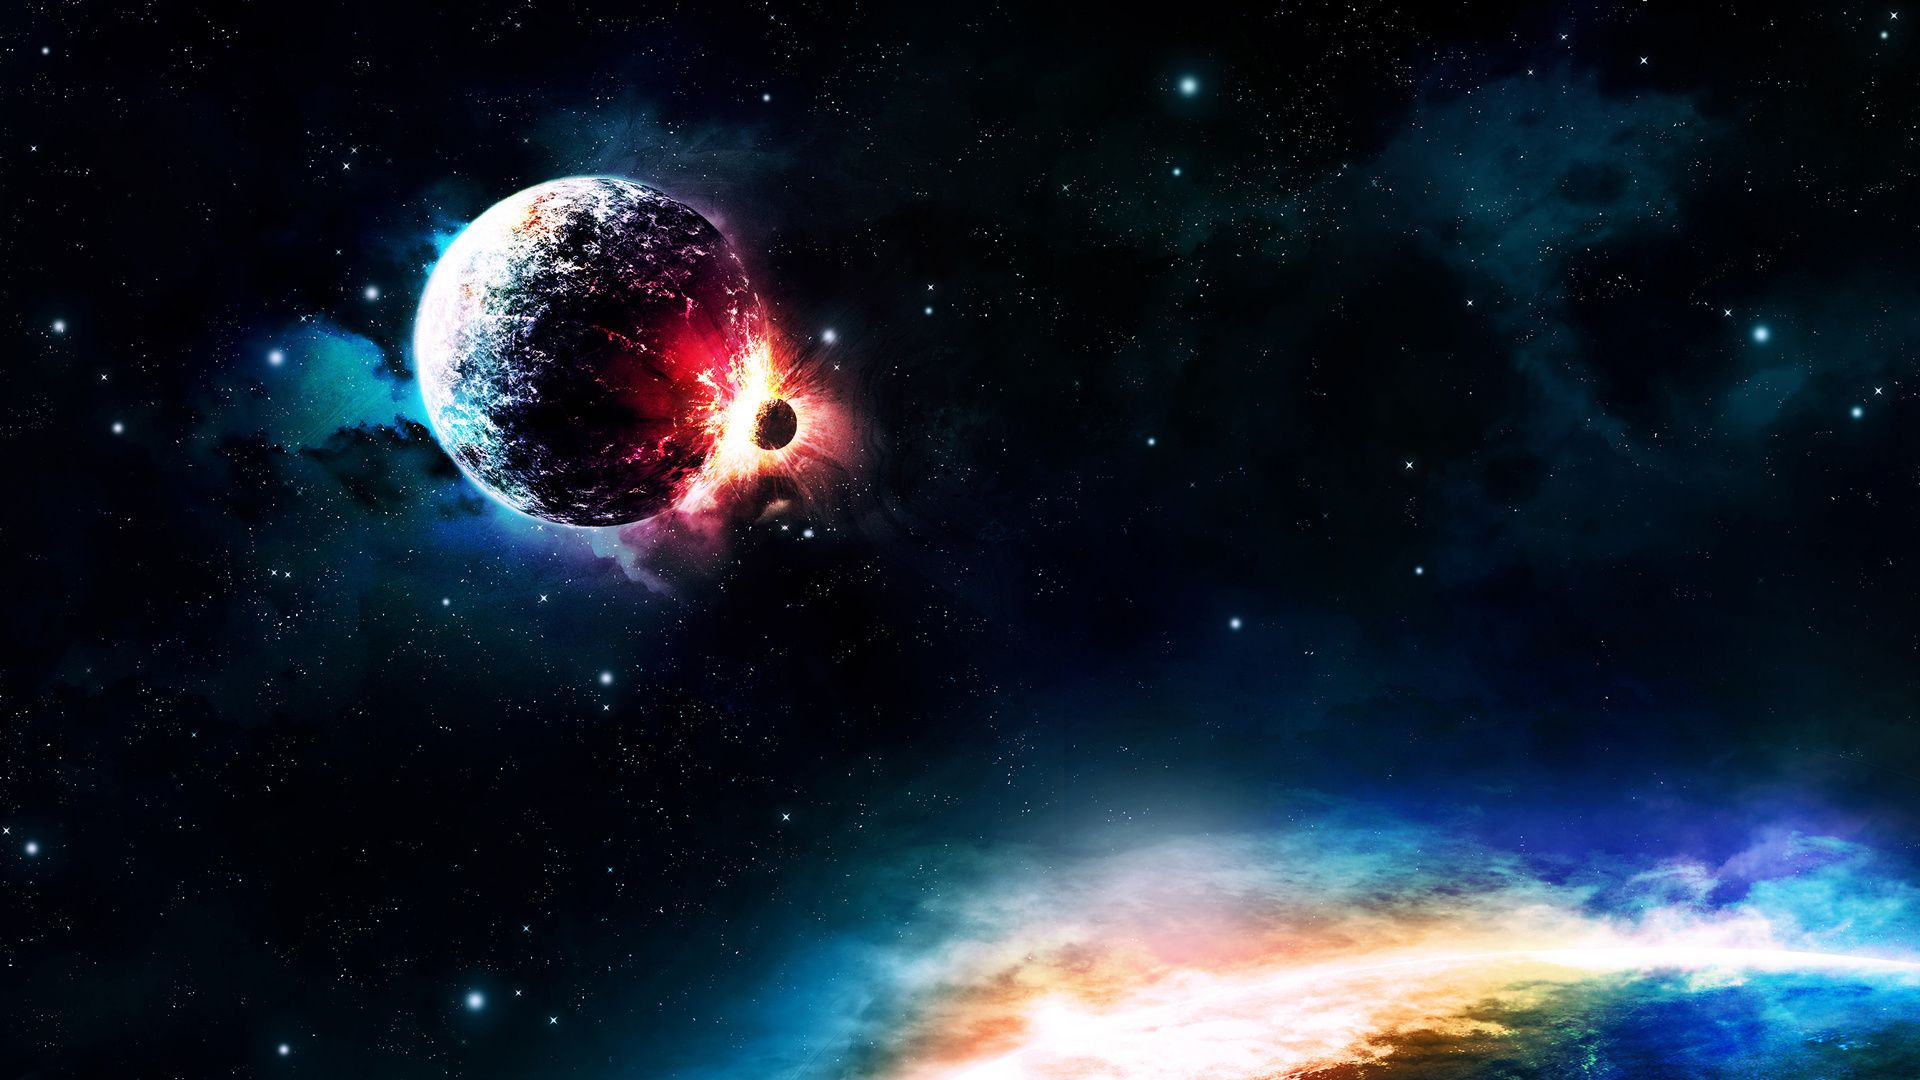 Outer Space PC Wallpaper